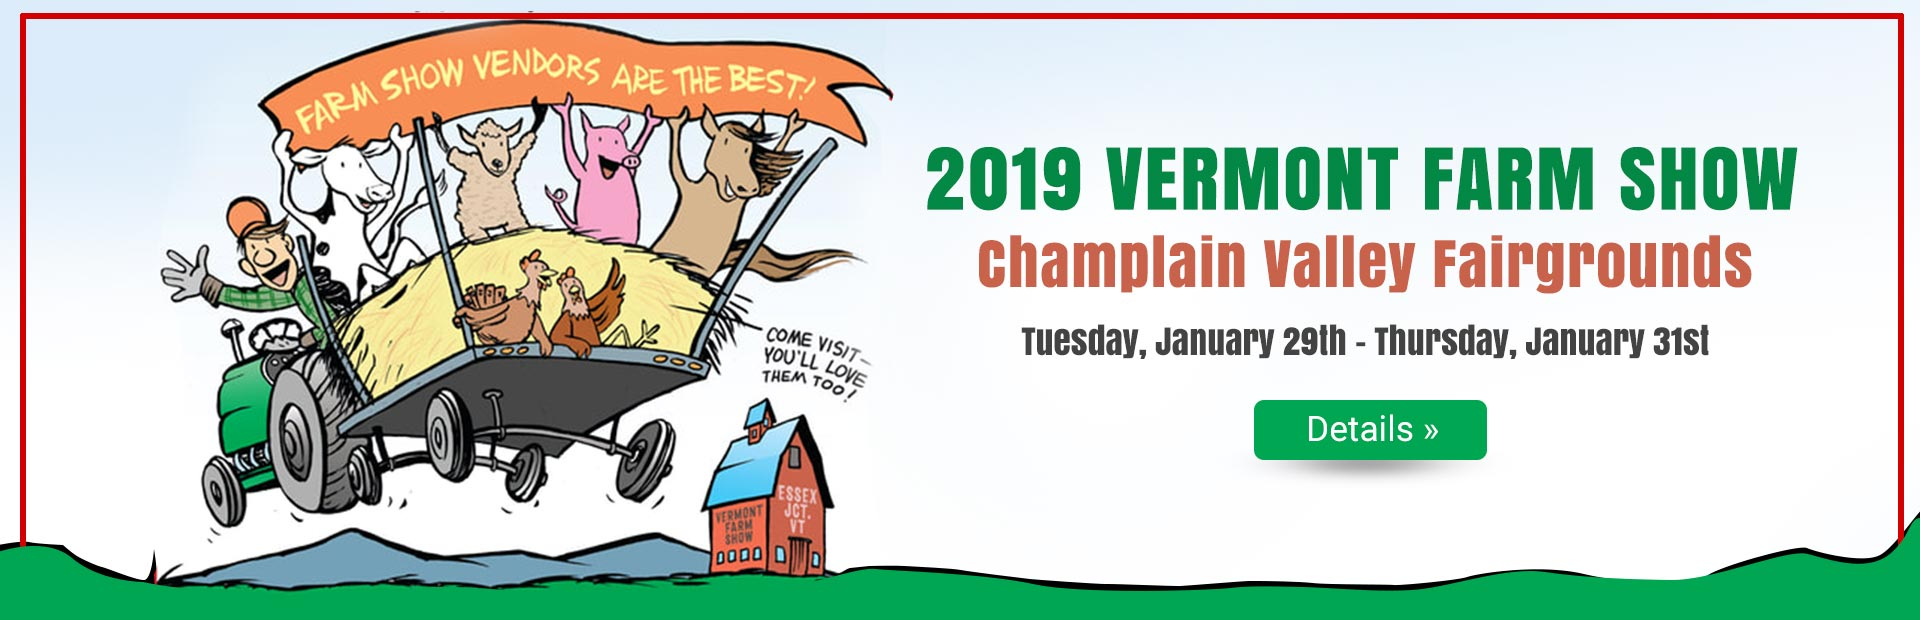 Join us Tuesday, January 29th - Thursday, January 31st for the 2019 Vermont Farm Show!